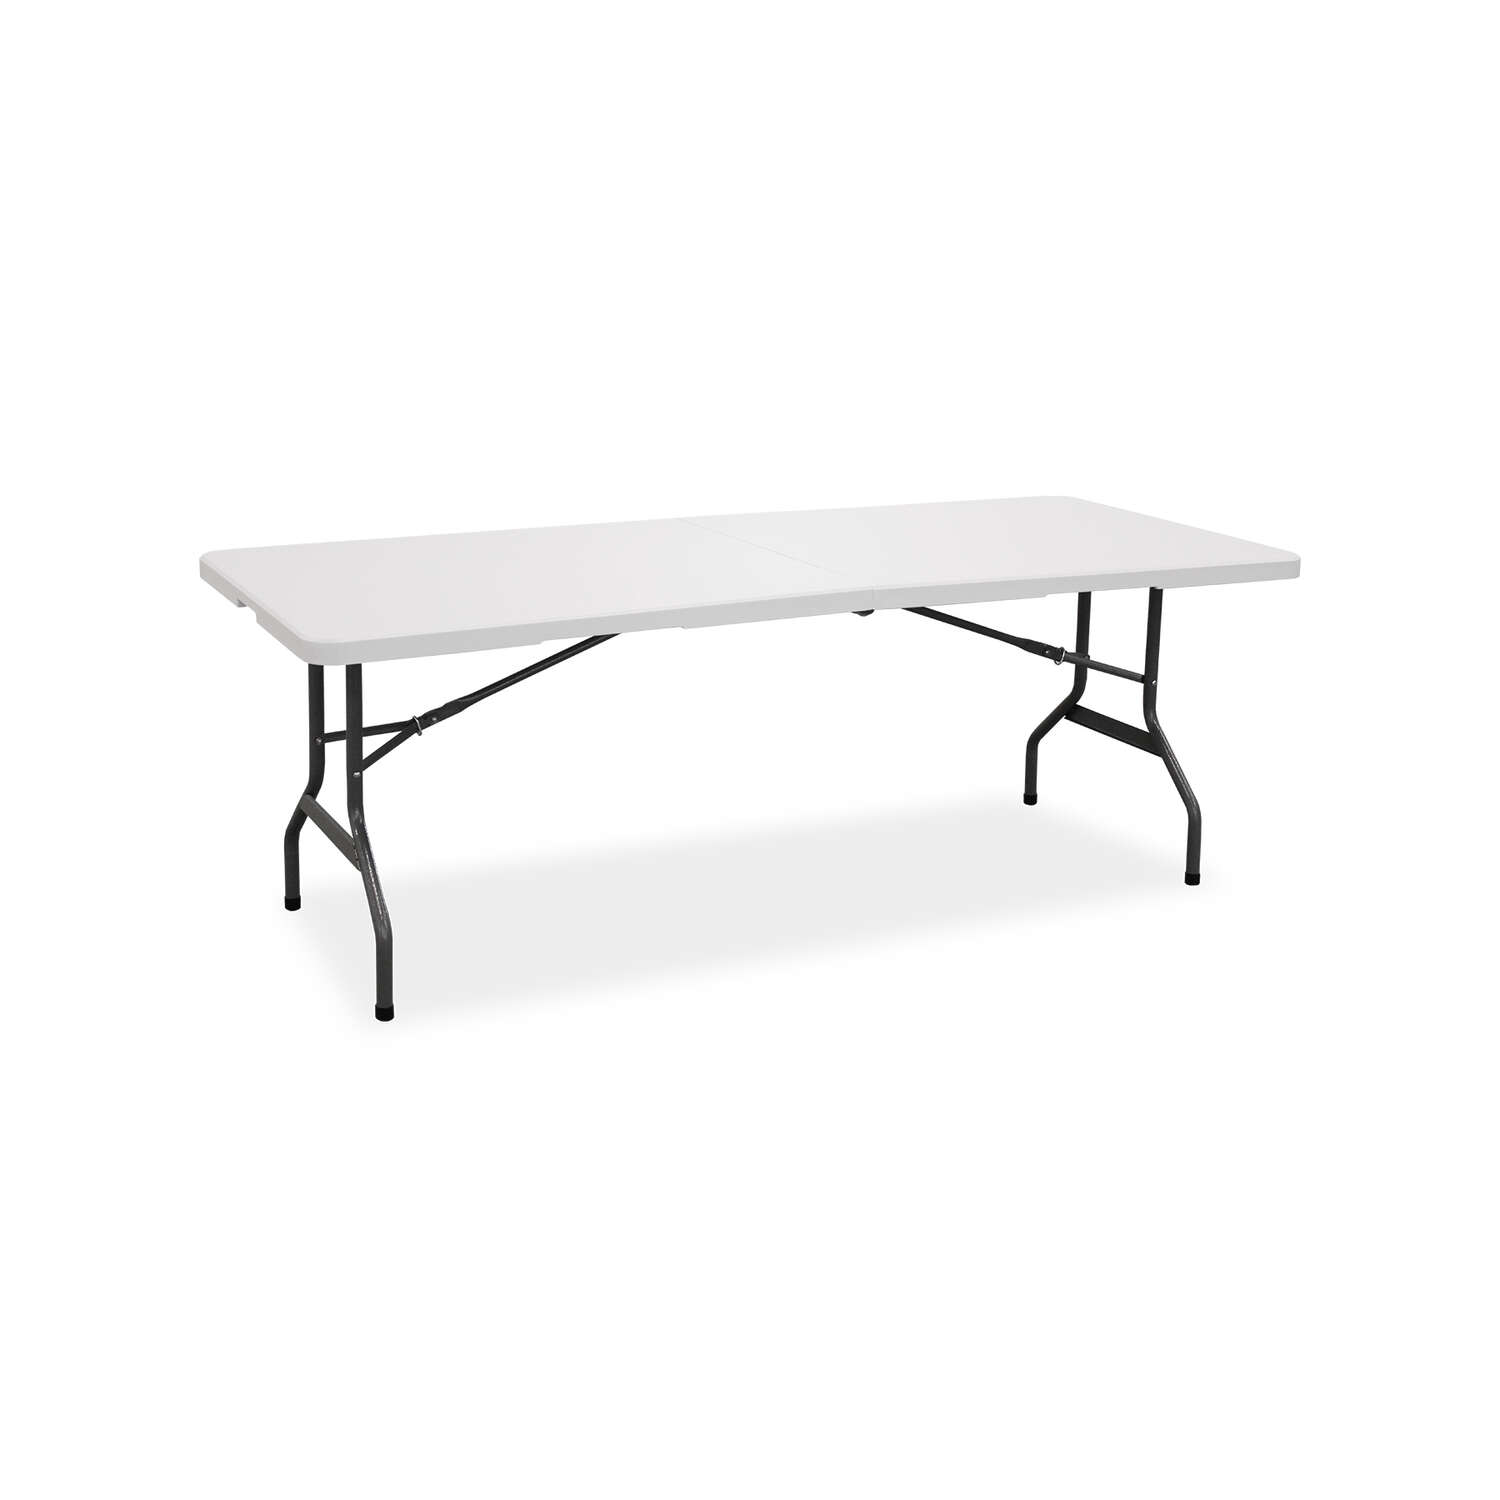 Living Accents 29-1/4 H x 30 W x 72 L Rectangular Fold-in-Half Table